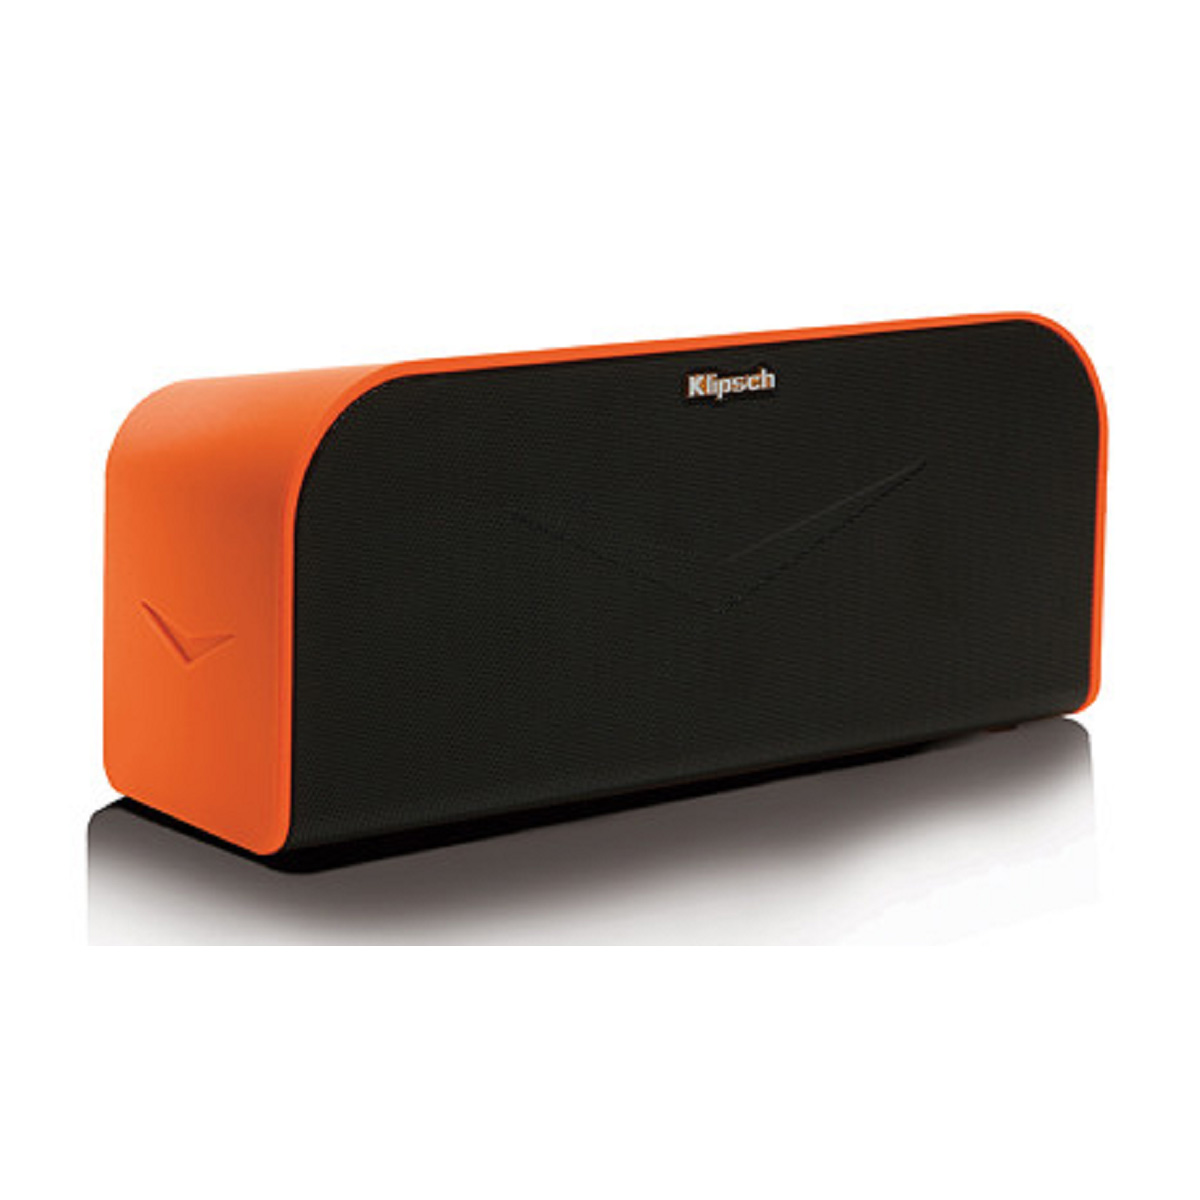 Klipsch 1060065 KMC 1 Portable Wireless Music System with Bluetooth